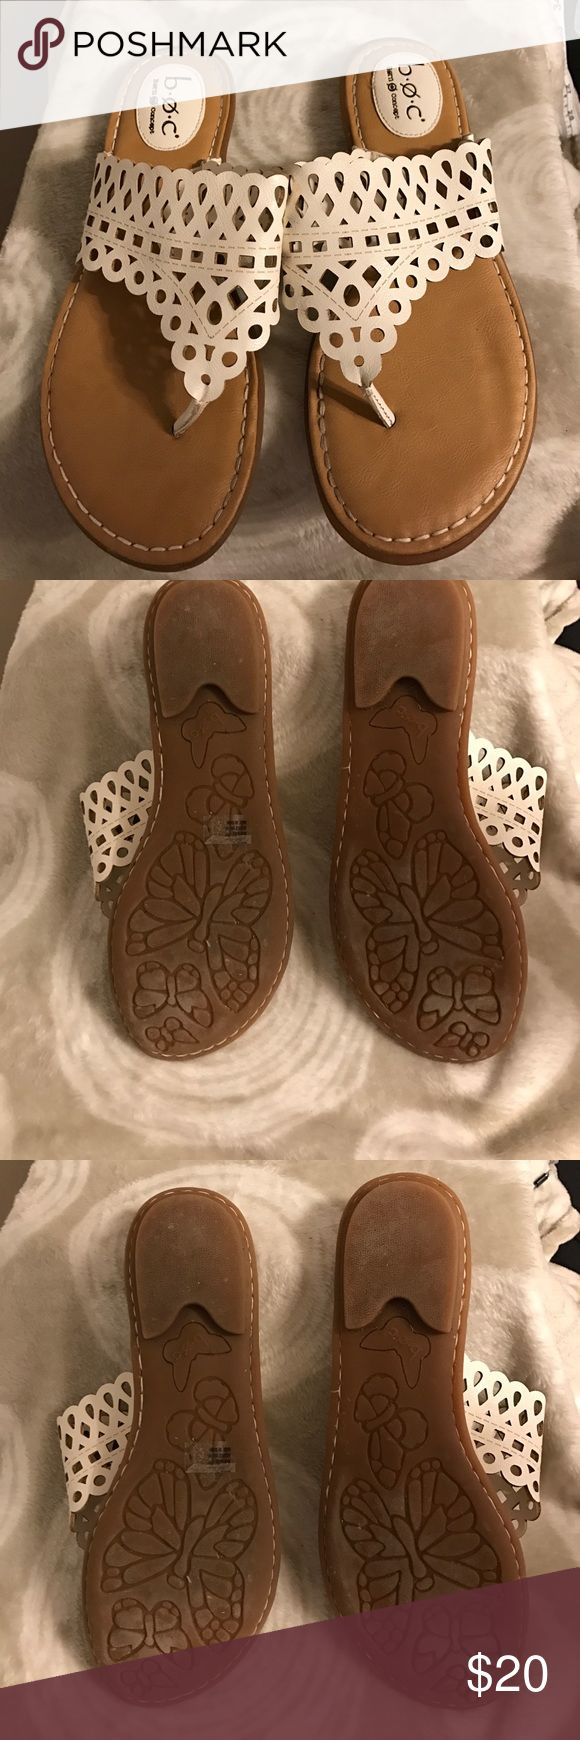 Comfortable white BOC sandals. Maybe worn once! These white Born Concept sandals have a nice padded heel and are known for their comfort. They are spring and summer ready!Smoke free home. Reasonable offers welcome. Shoe 19 Born Shoes Sandals